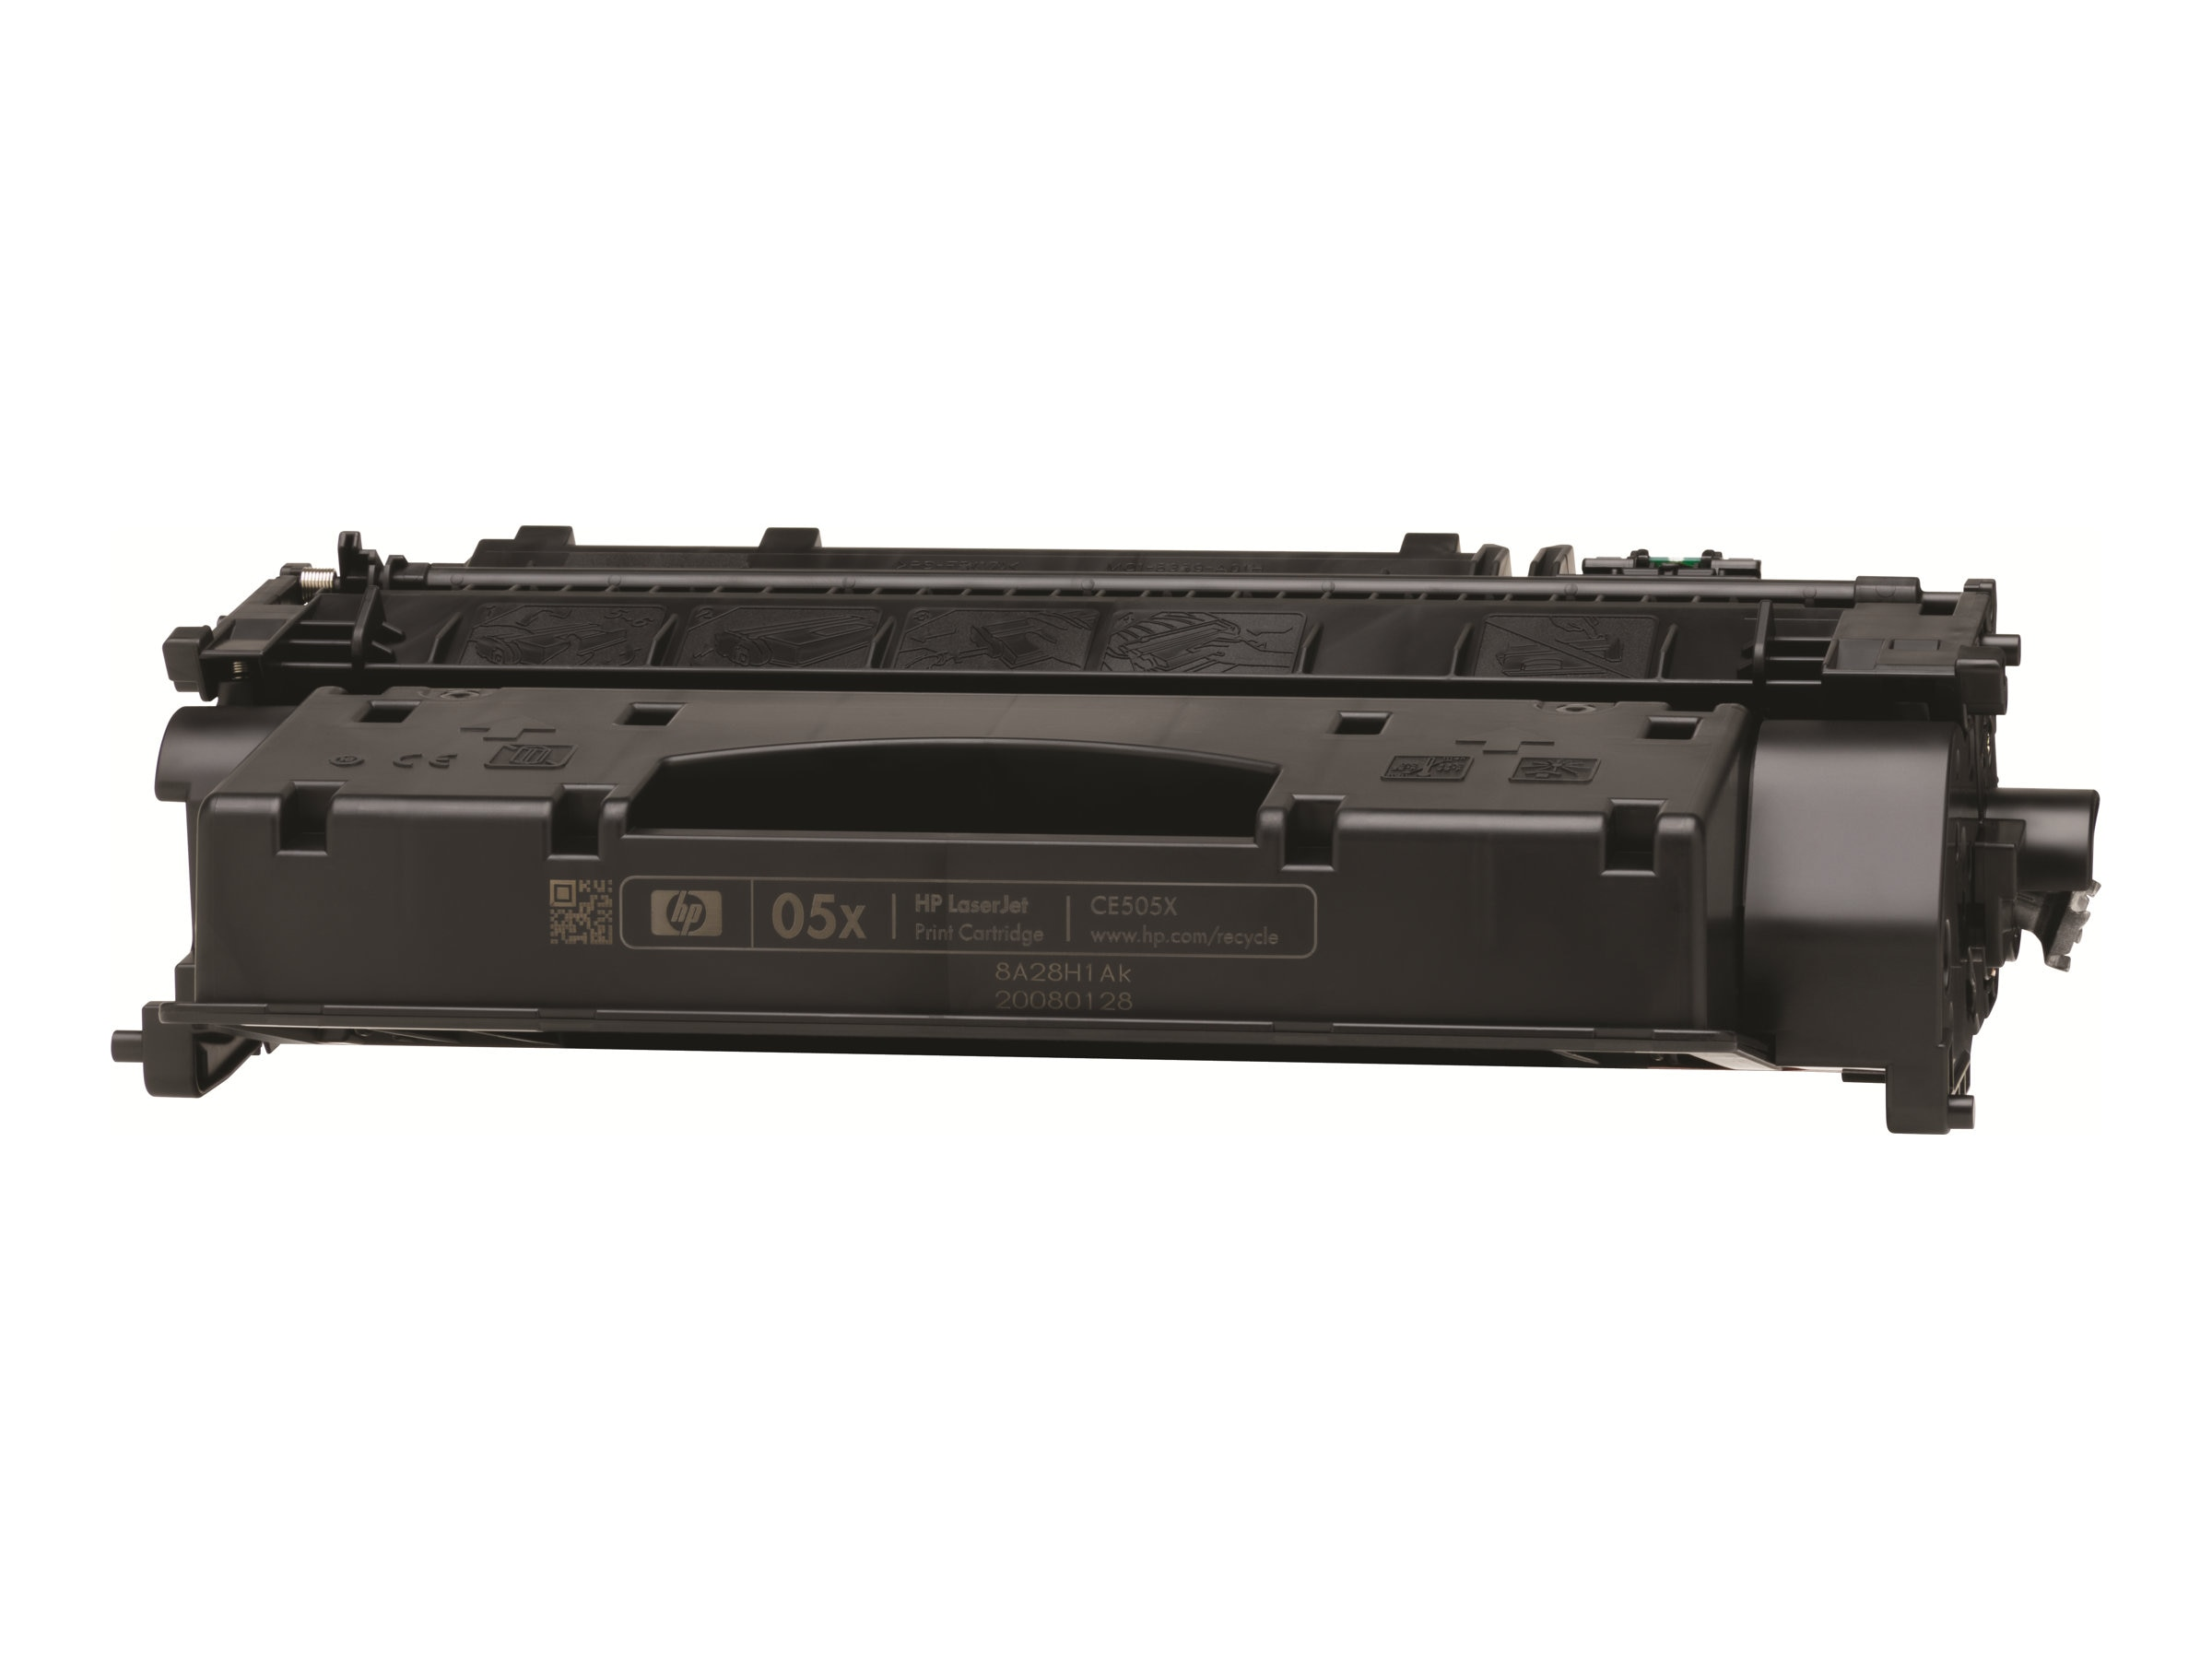 HP 05X (CE505XD) 2-pack High Yield Black Original LaserJet Toner Cartridges, CE505XD, 11226321, Toner and Imaging Components